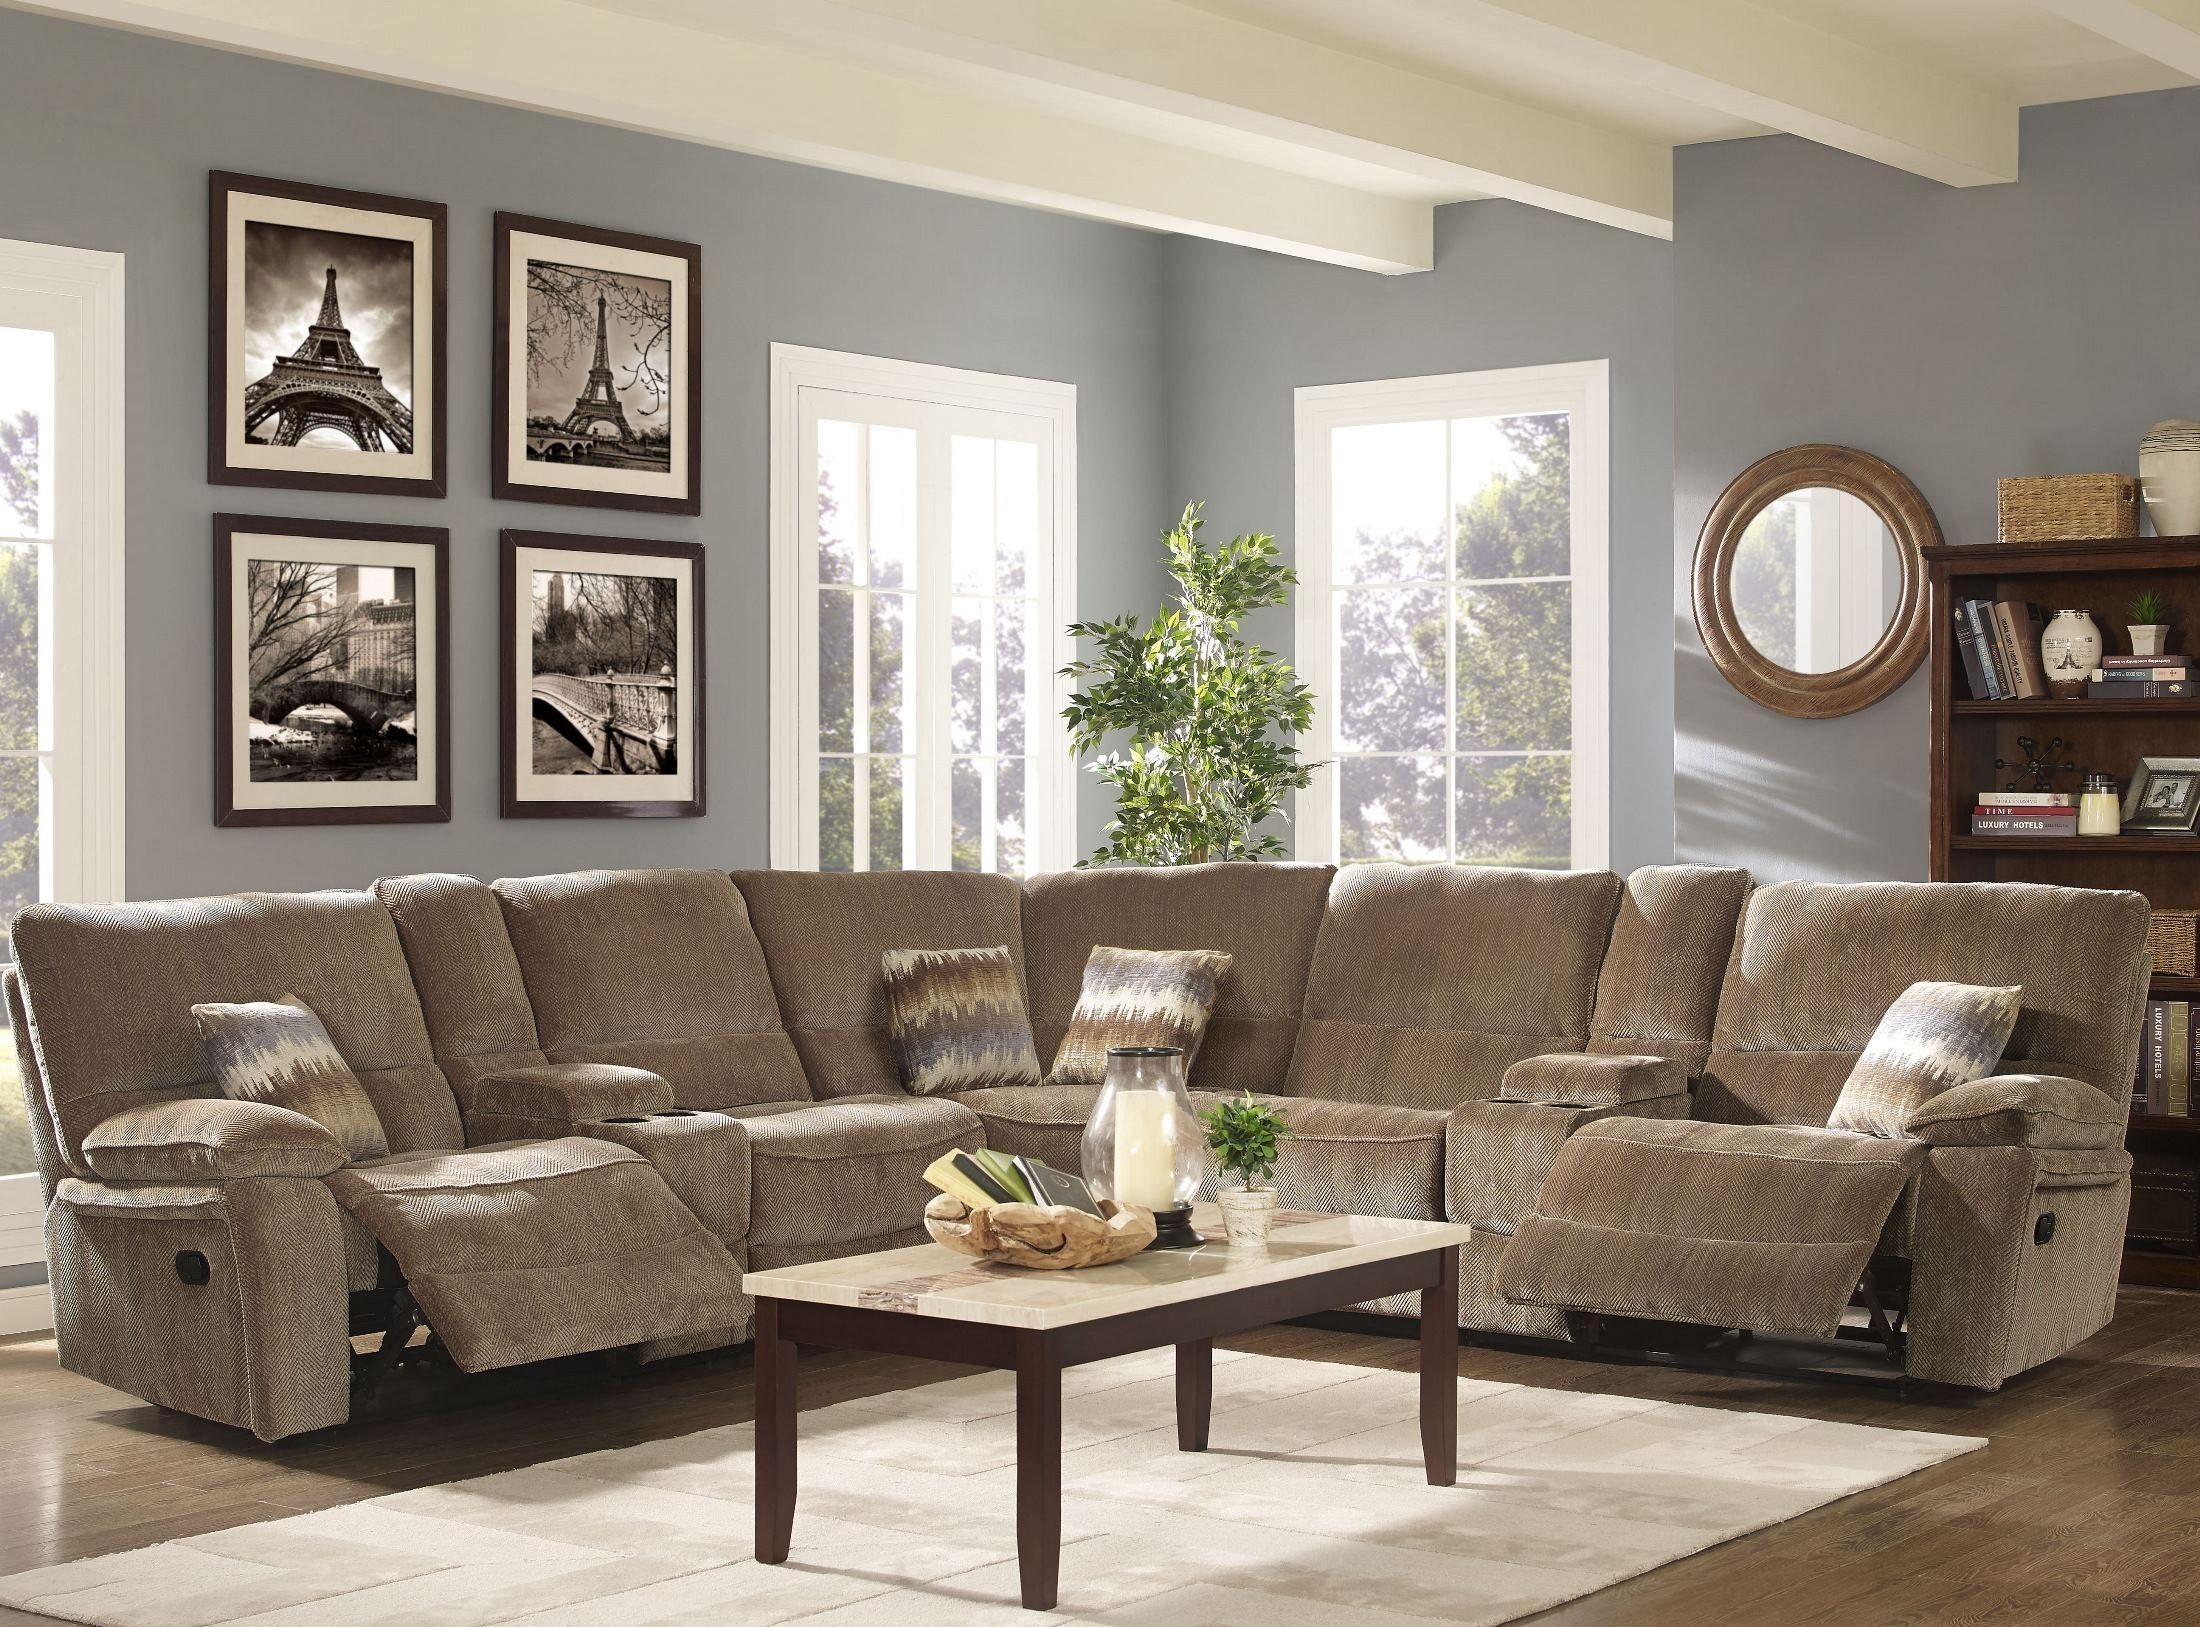 Ranger Bravo Sandalwood Power Reclining Sectional From New Classic Regarding Turdur 3 Piece Sectionals With Raf Loveseat (Image 22 of 25)